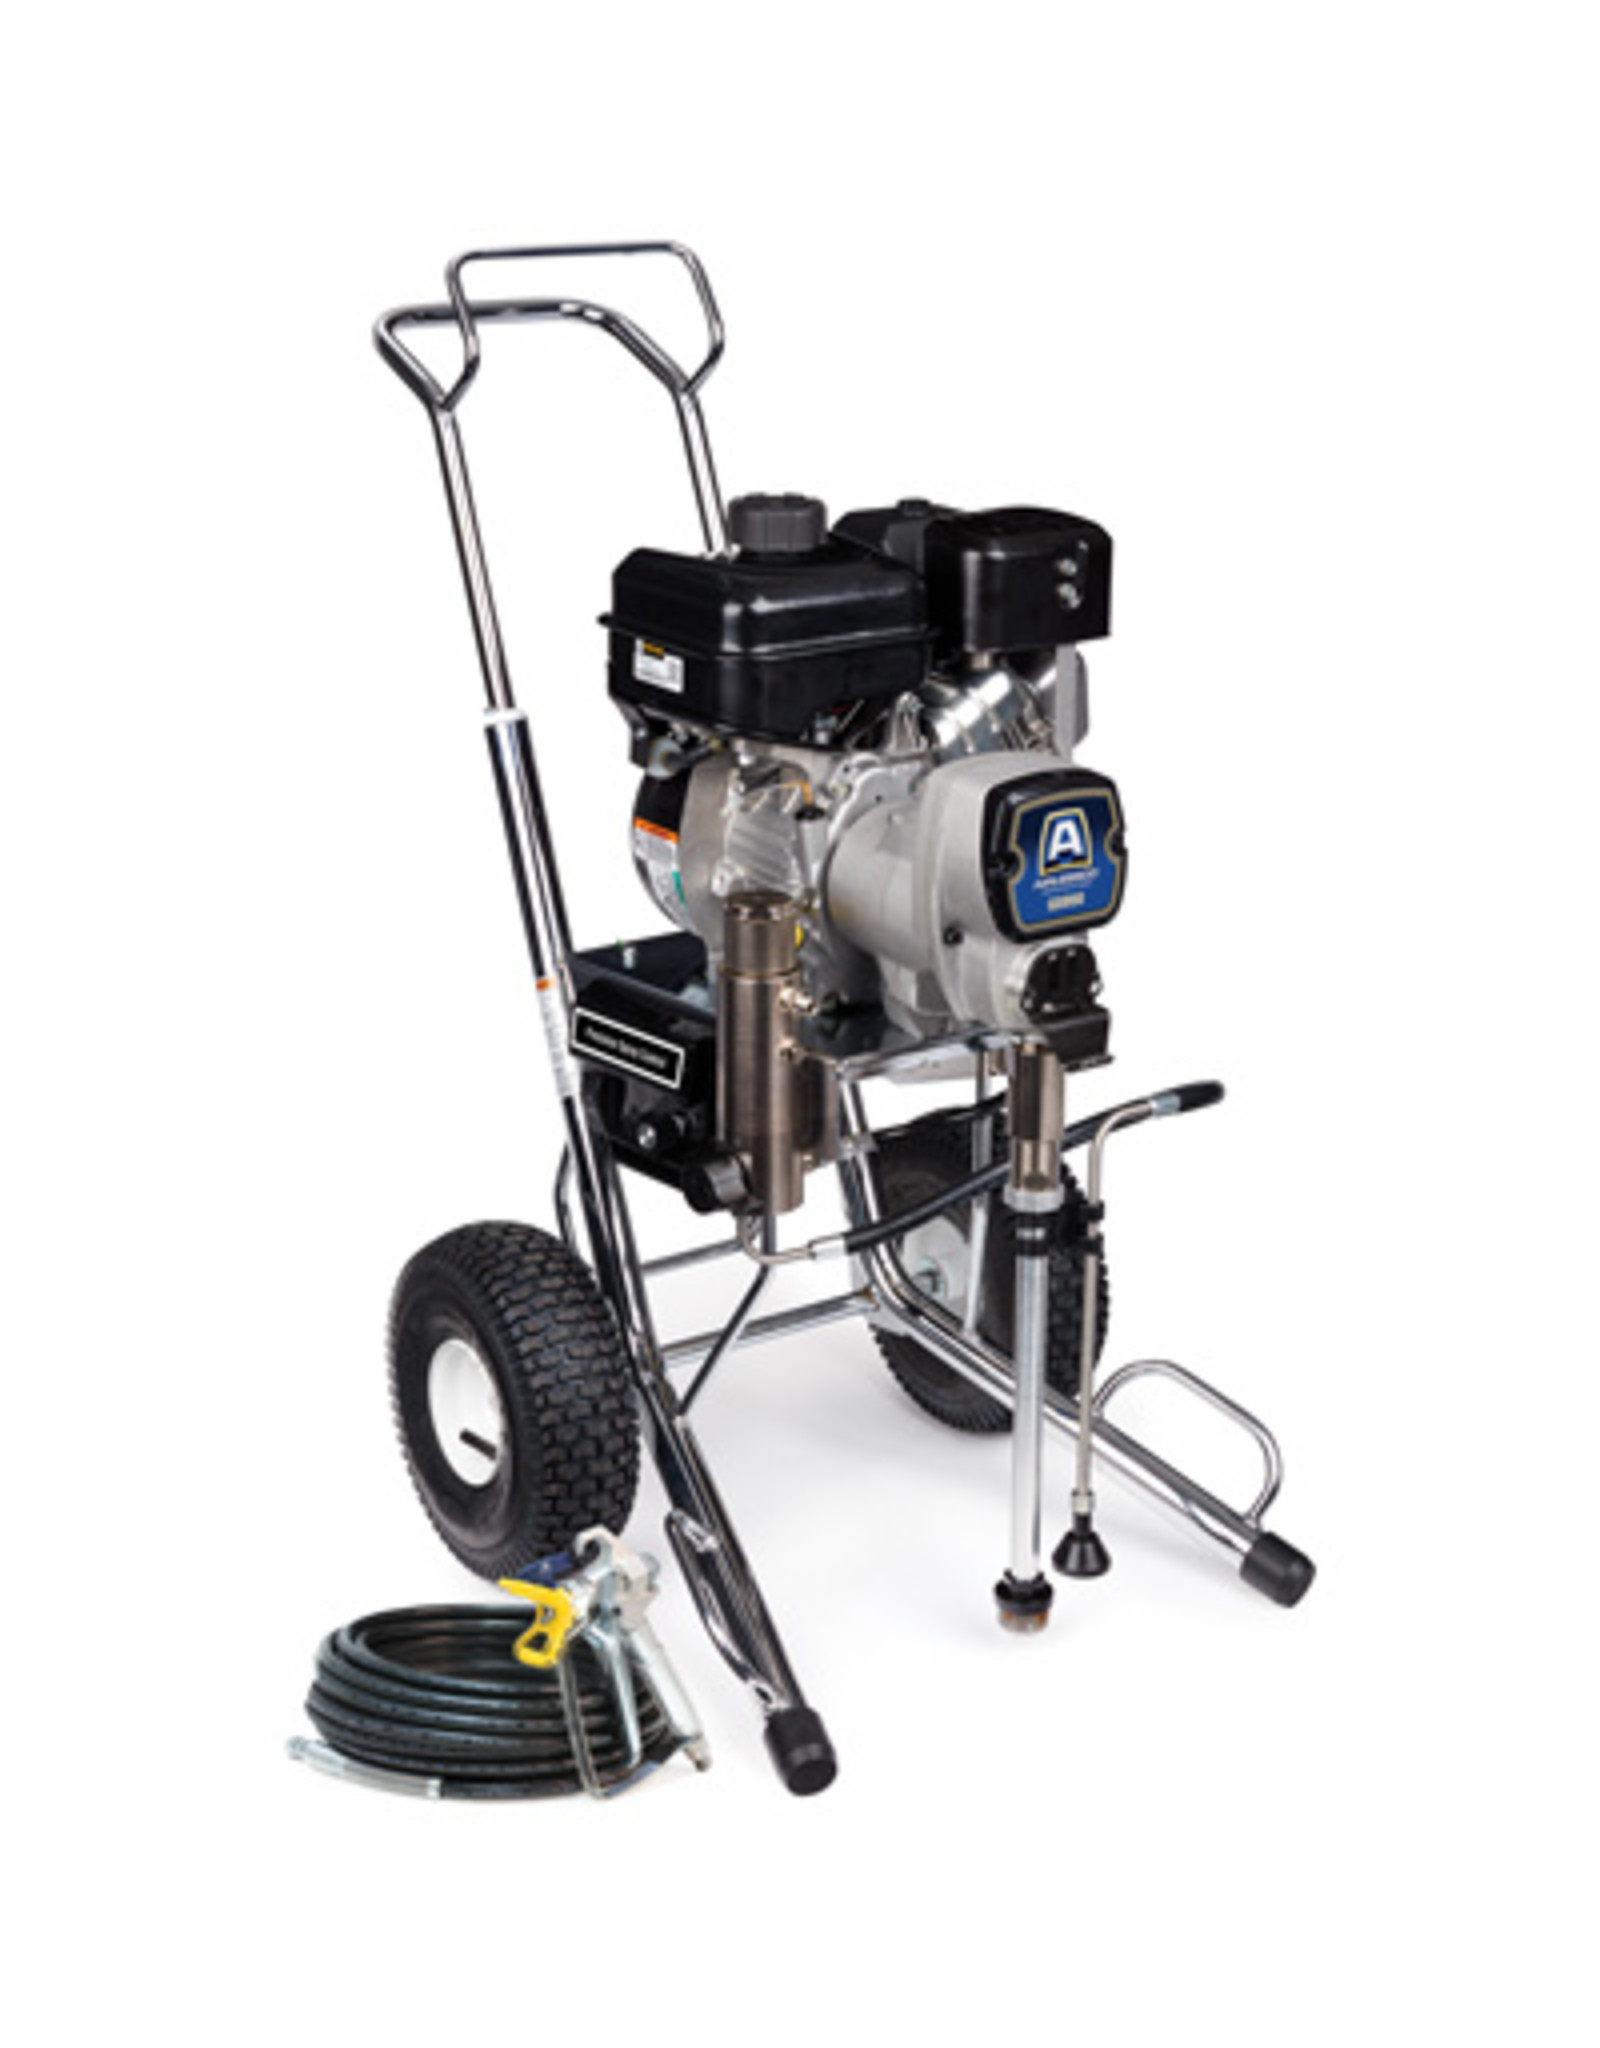 Airlessco By Graco 17M141 GS950 Gas Airless Paint Sprayer by Graco